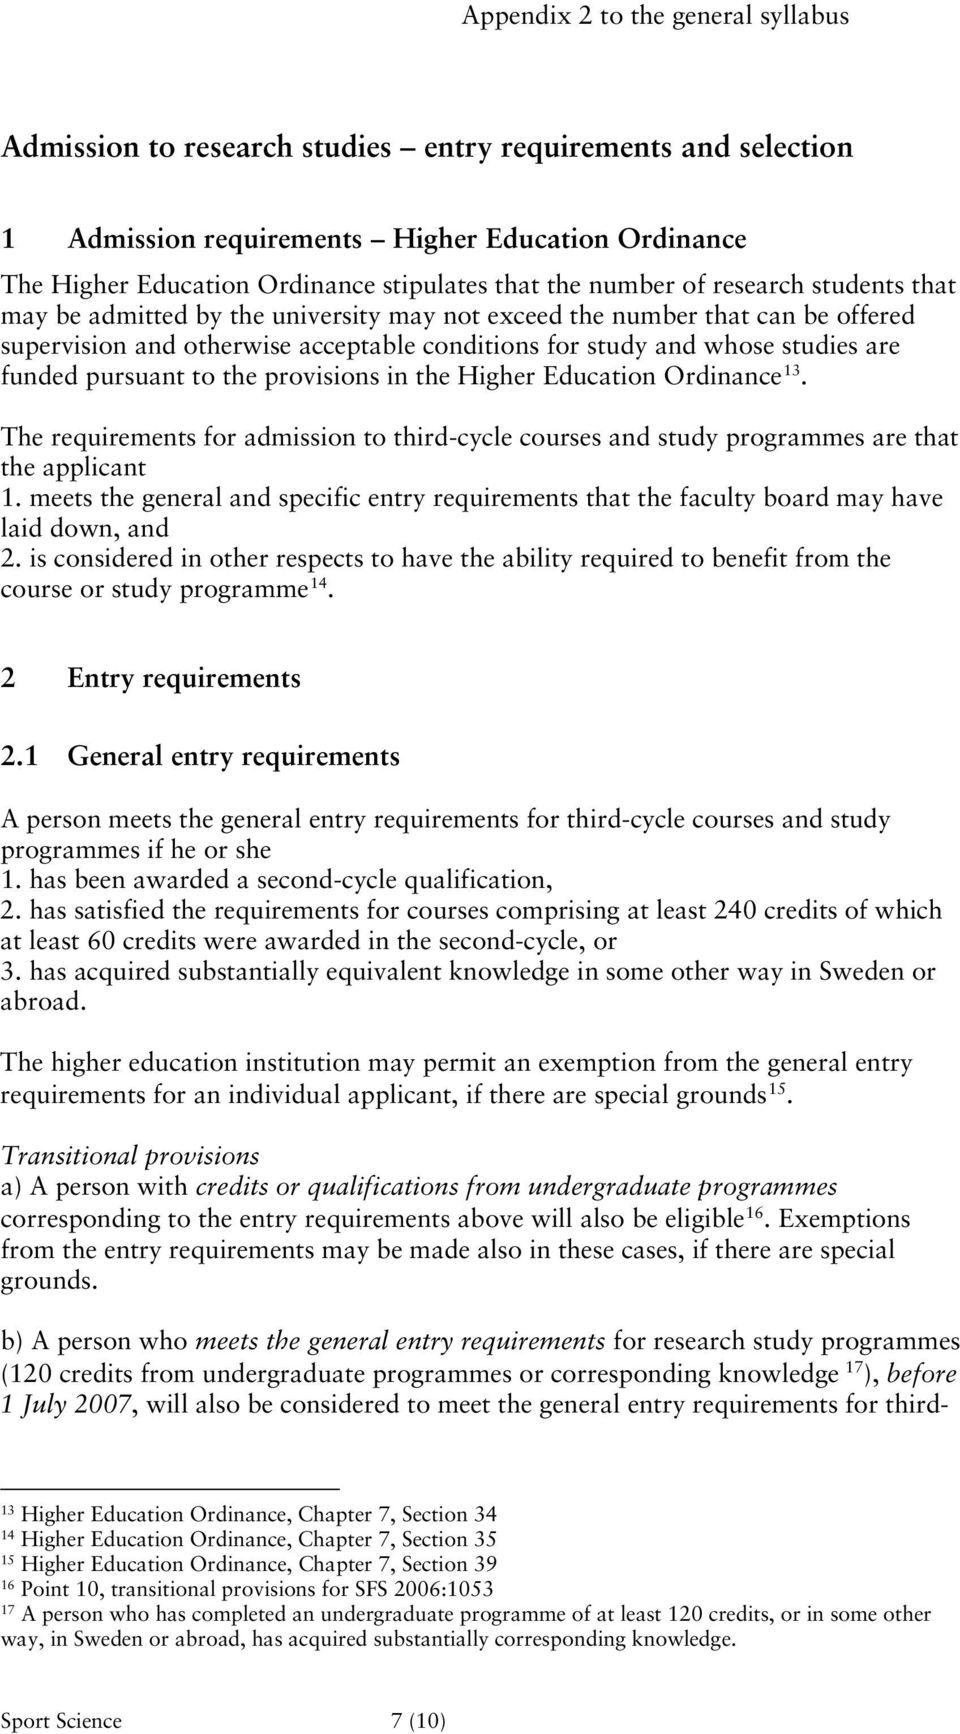 funded pursuant to the provisions in the Higher Education Ordinance 13. The requirements for admission to third-cycle courses and study programmes are that the applicant 1.